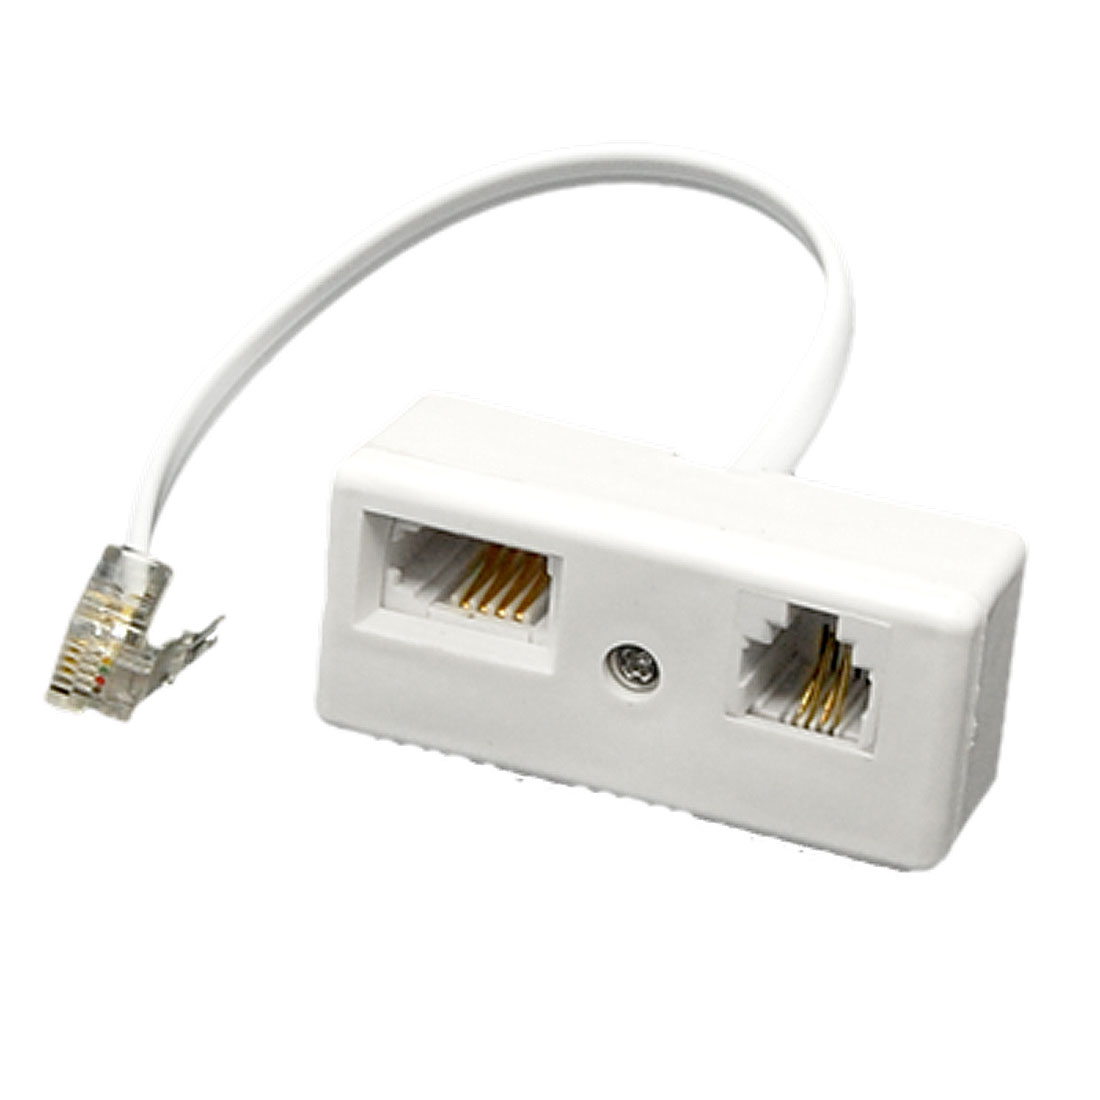 RJ11 Male to RJ11 UK BT Telephone Socket Adapter Splitter